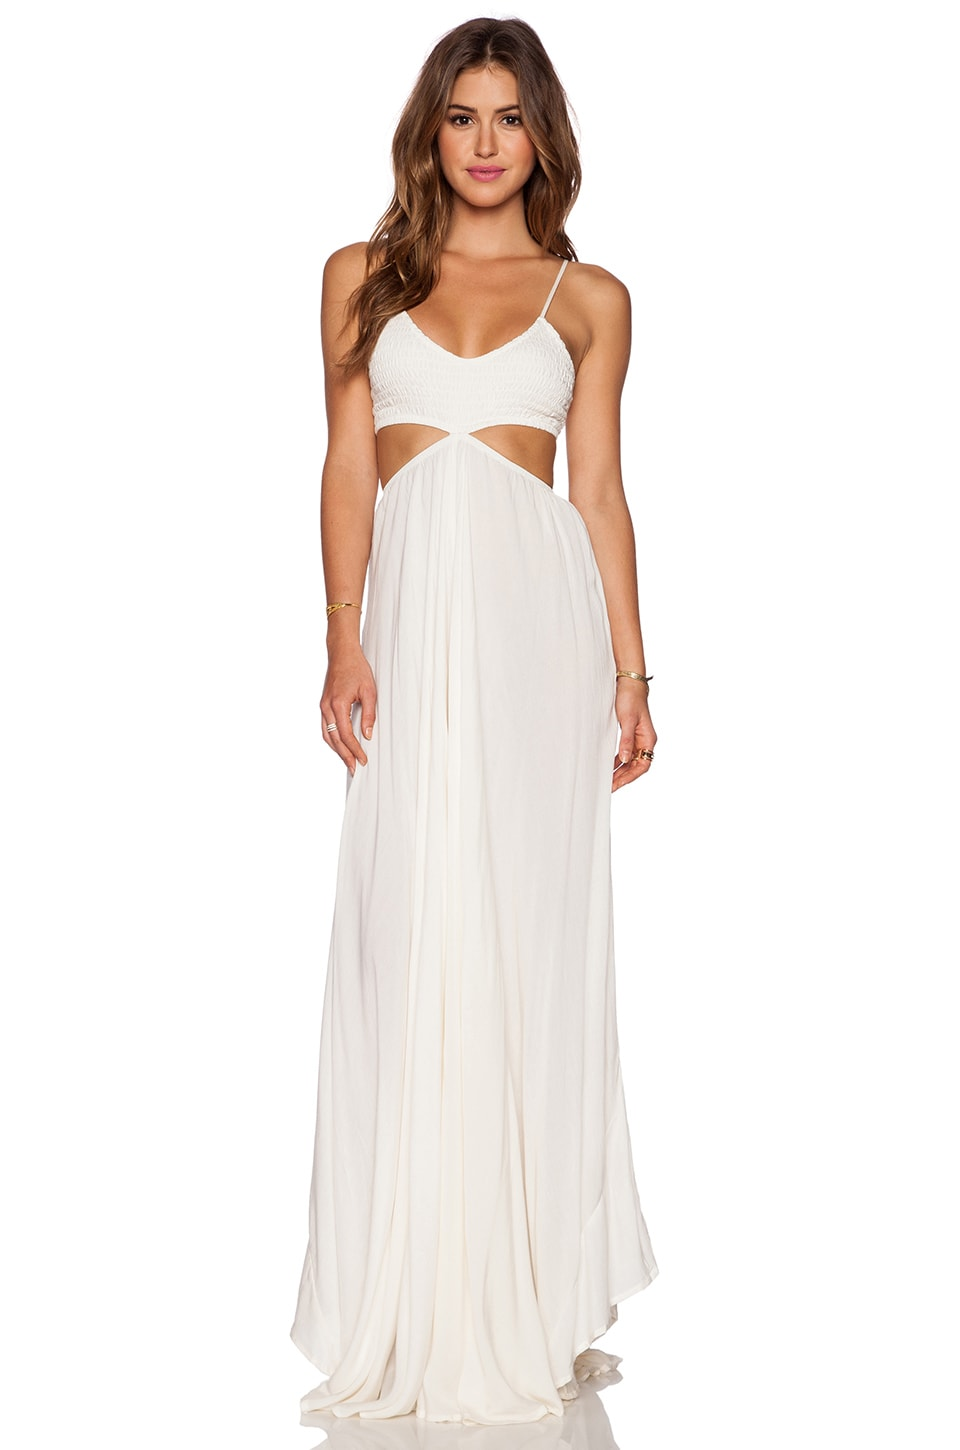 Indah Innocence Cutaway Maxi Dress in White